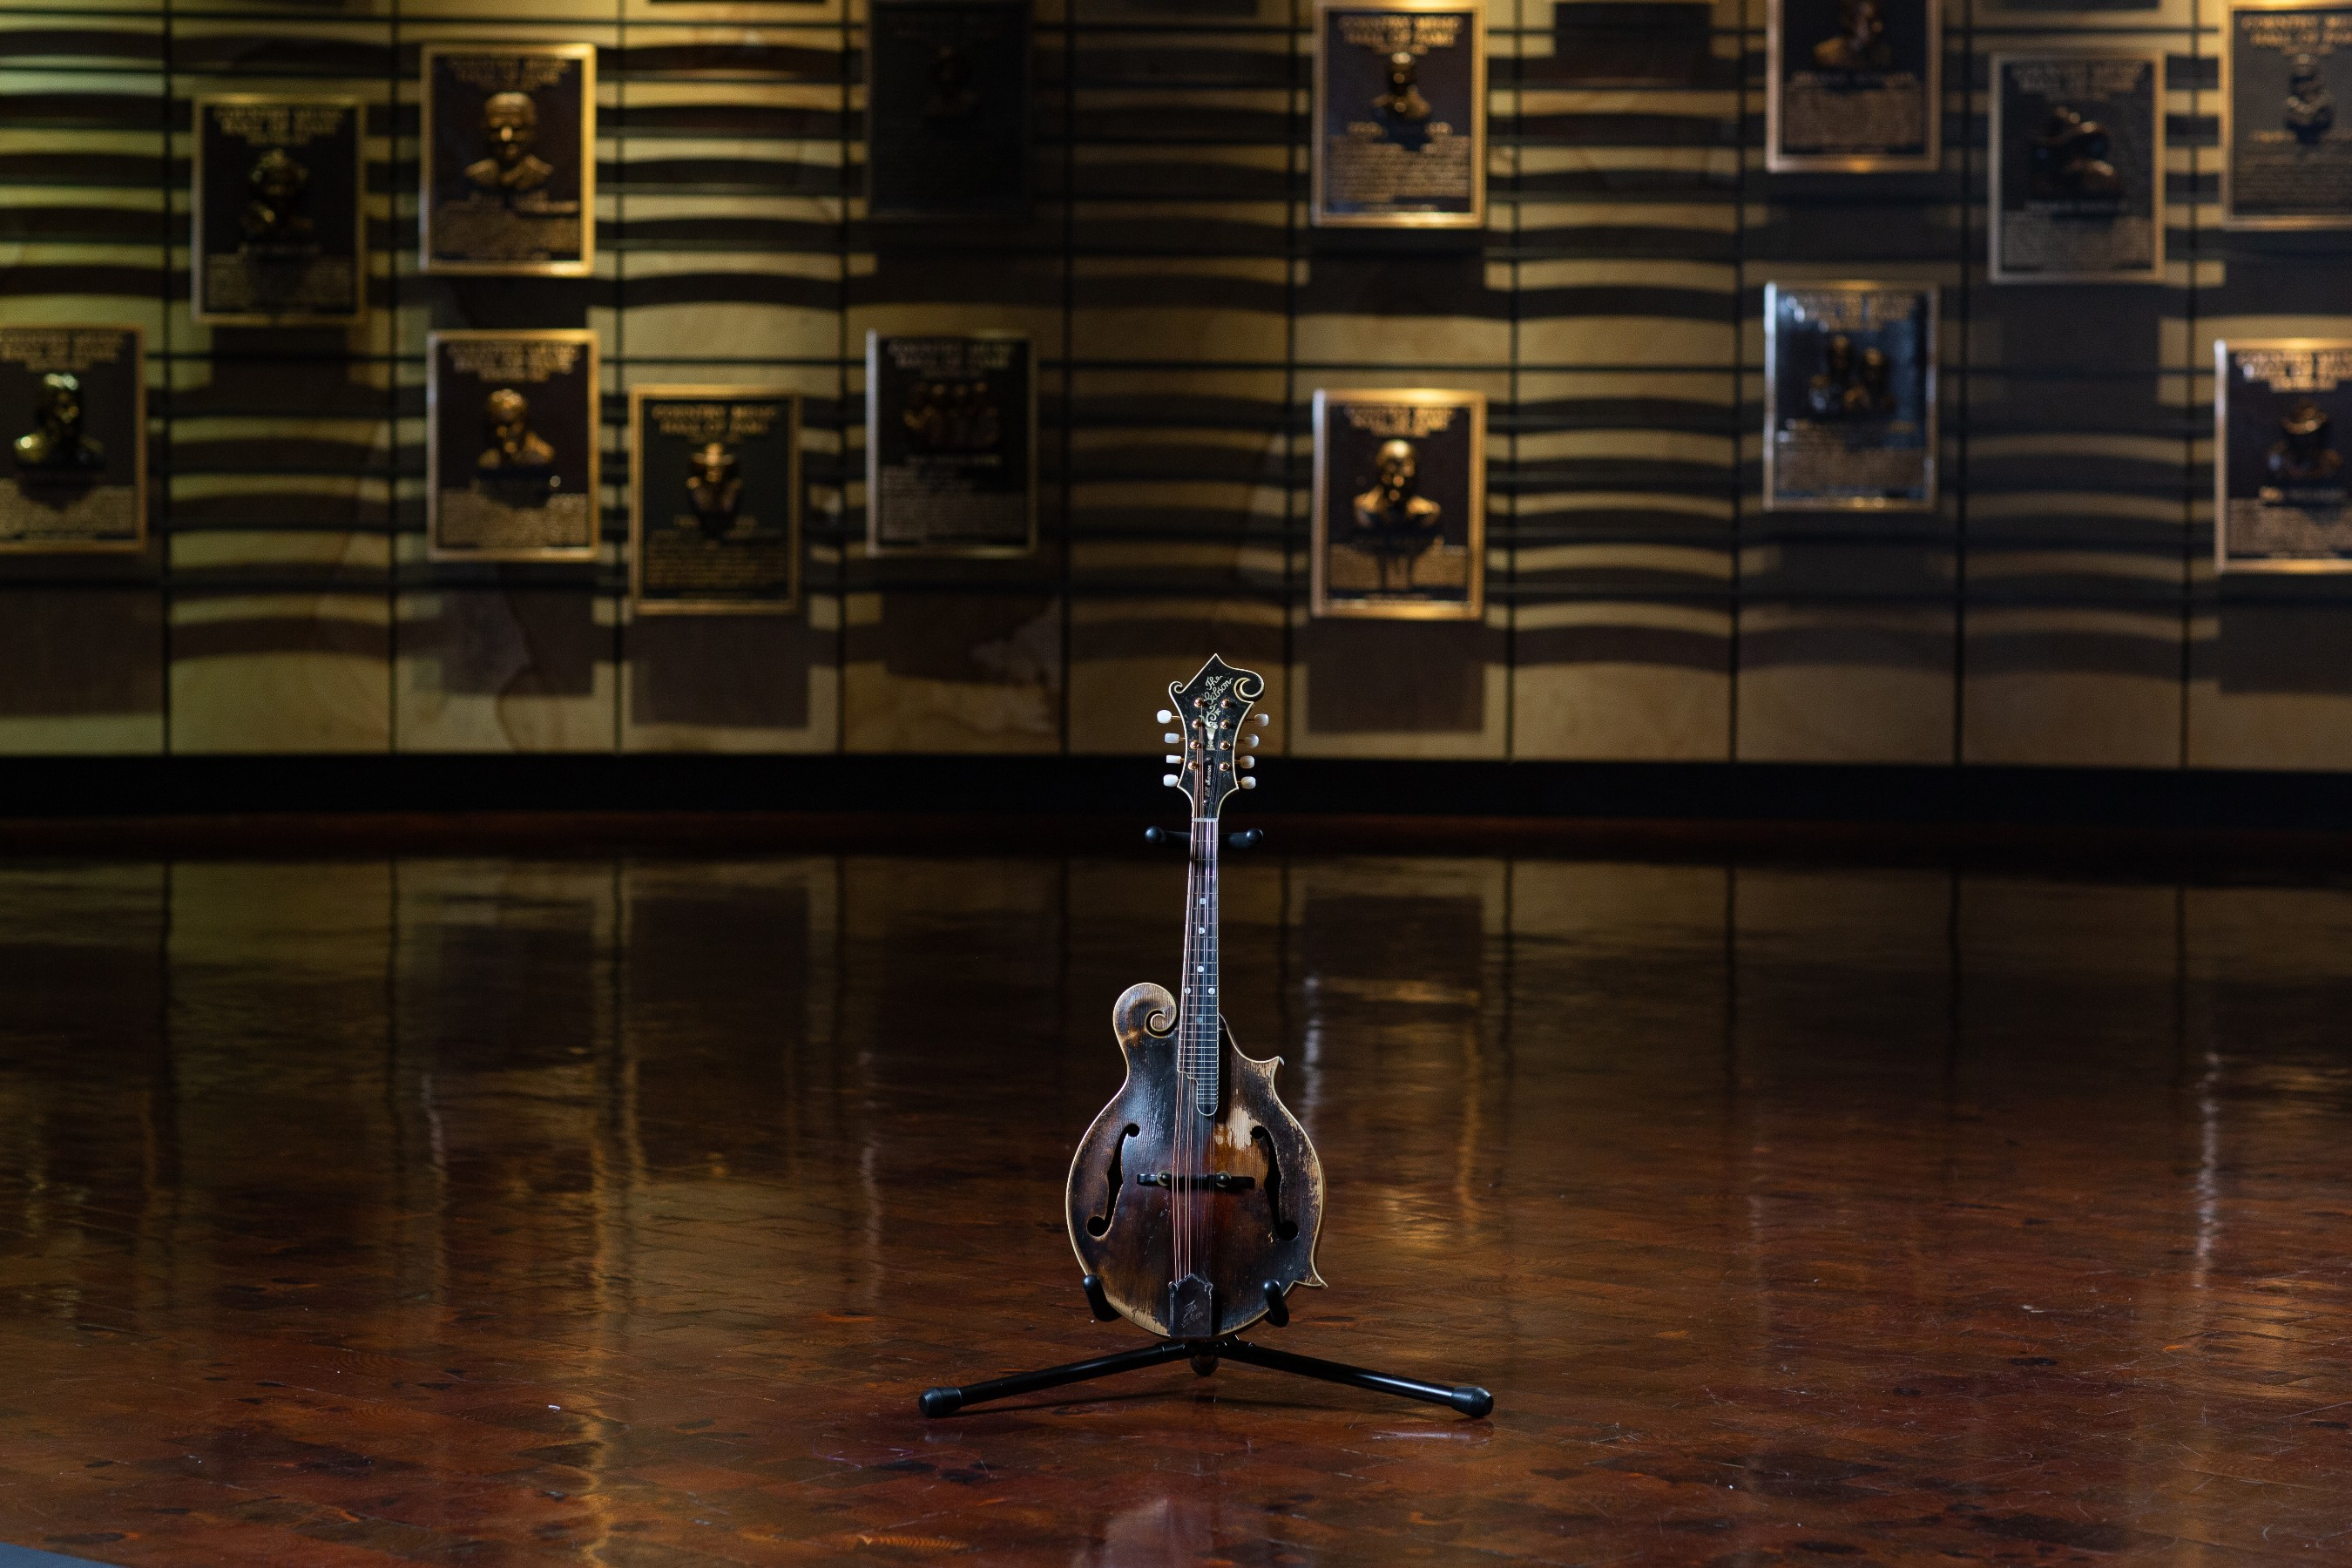 Bill Monroe's 1923 Gibson F-5 mandolin; signed and dated by Lloyd Loar on 7/9/23 (museum collection). Photo by Bob Delevante for the Country Music Hall of Fame and Museum.